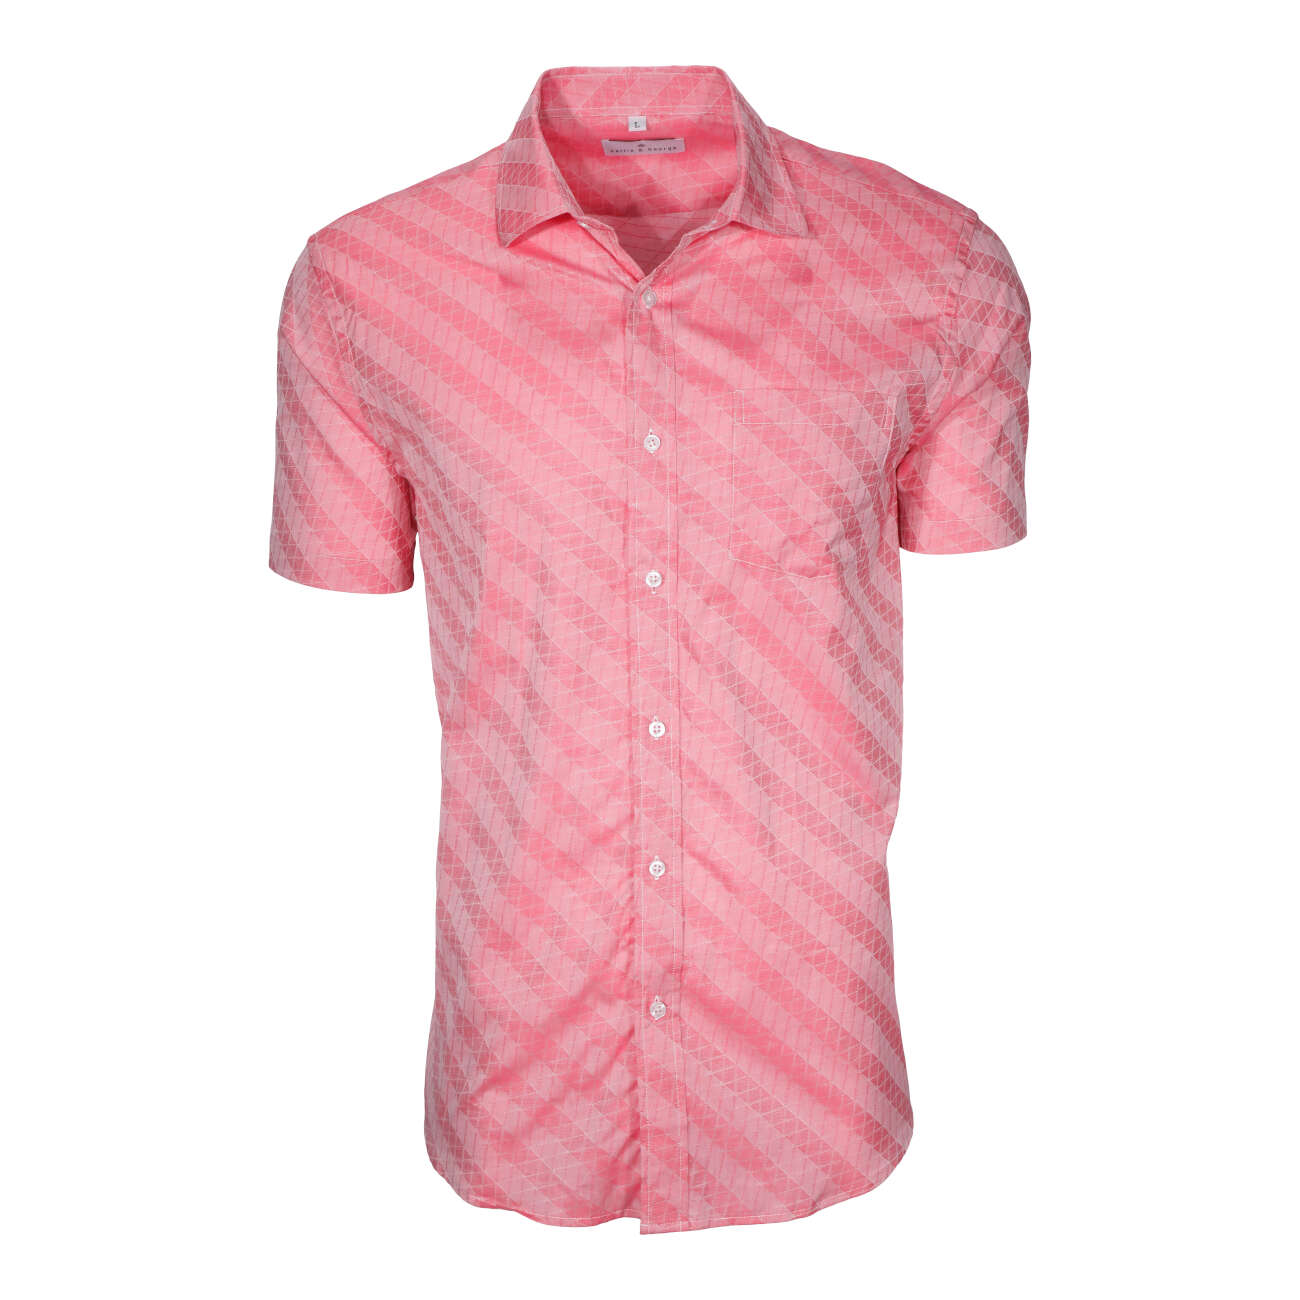 Salmon men's short sleeve dress shirt.